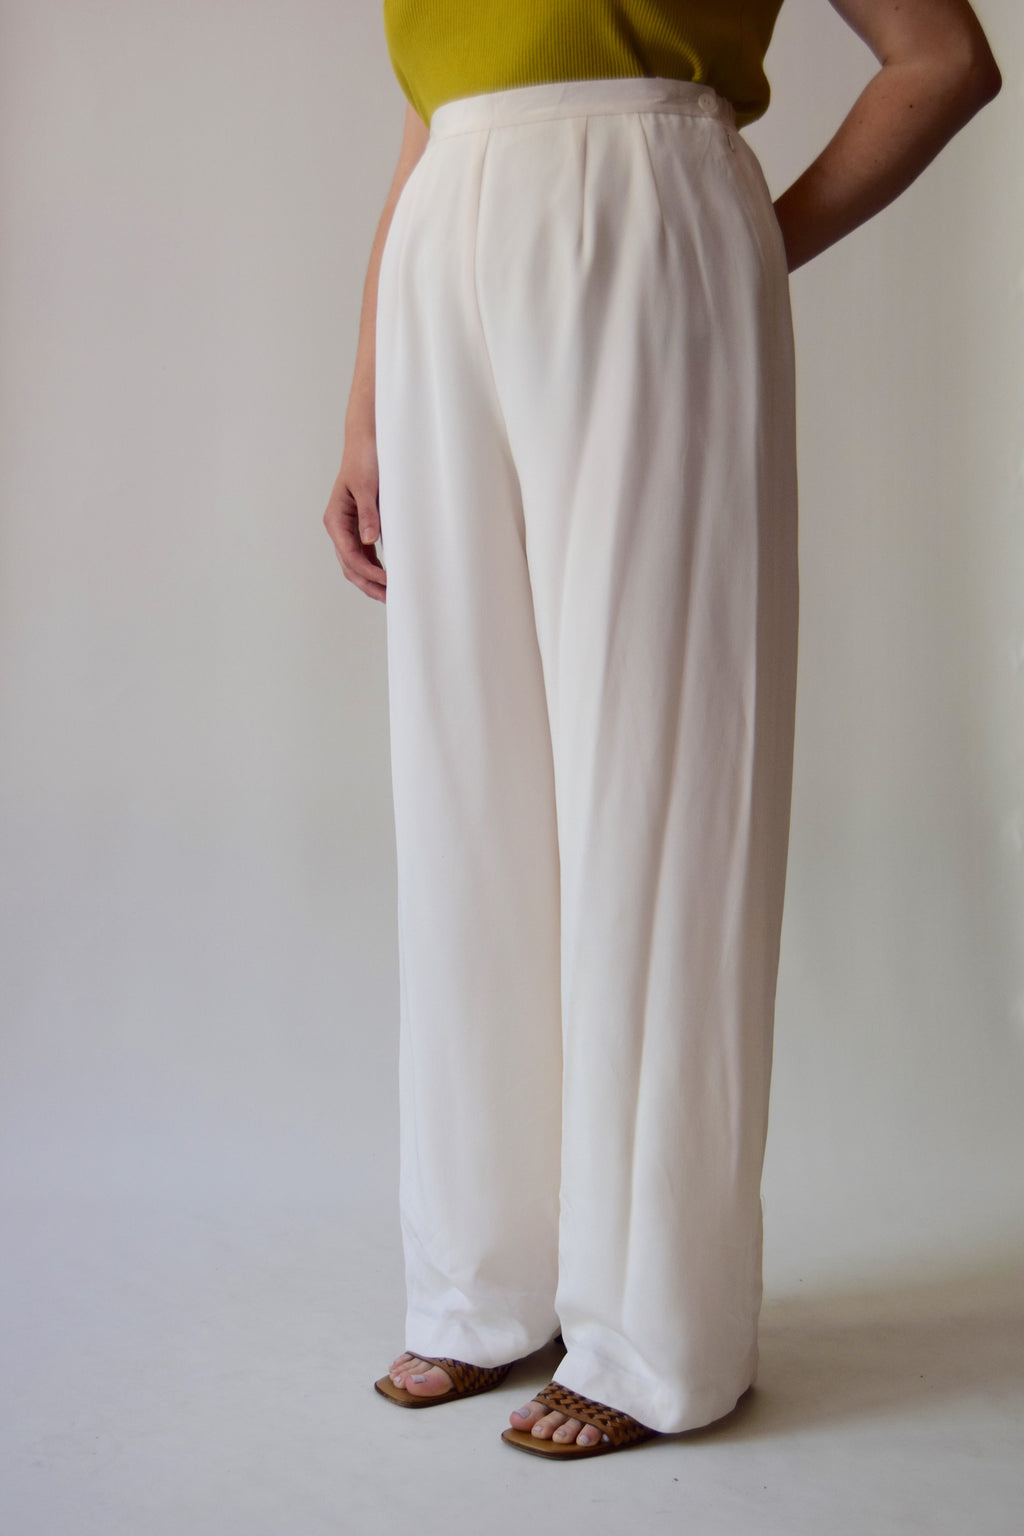 Saks Fifth Avenue Pearl Silk Trousers FREE SHIPPING TO THE U.S.